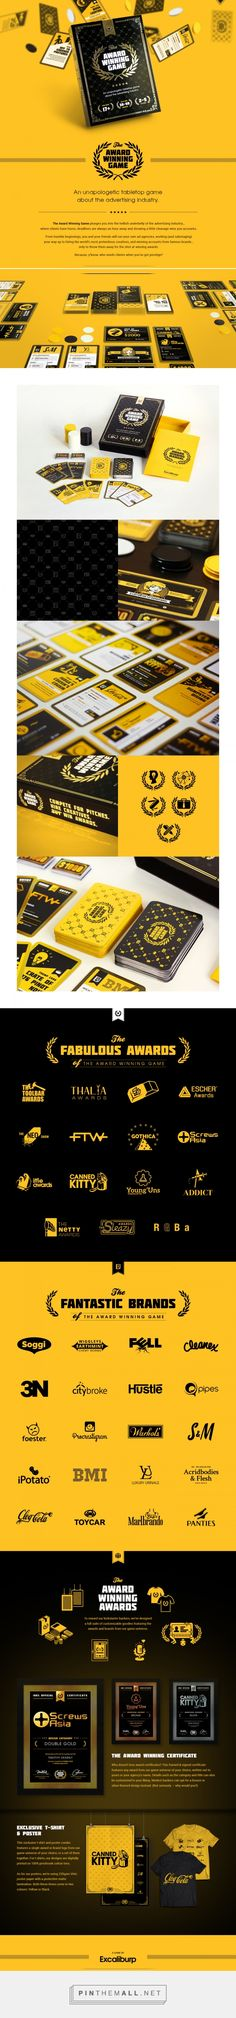 The Award Winning Game packaging on Behance curated by Packaging Diva PD. An unapologetic tabletop game about the advertising industry. This looks like fun : )